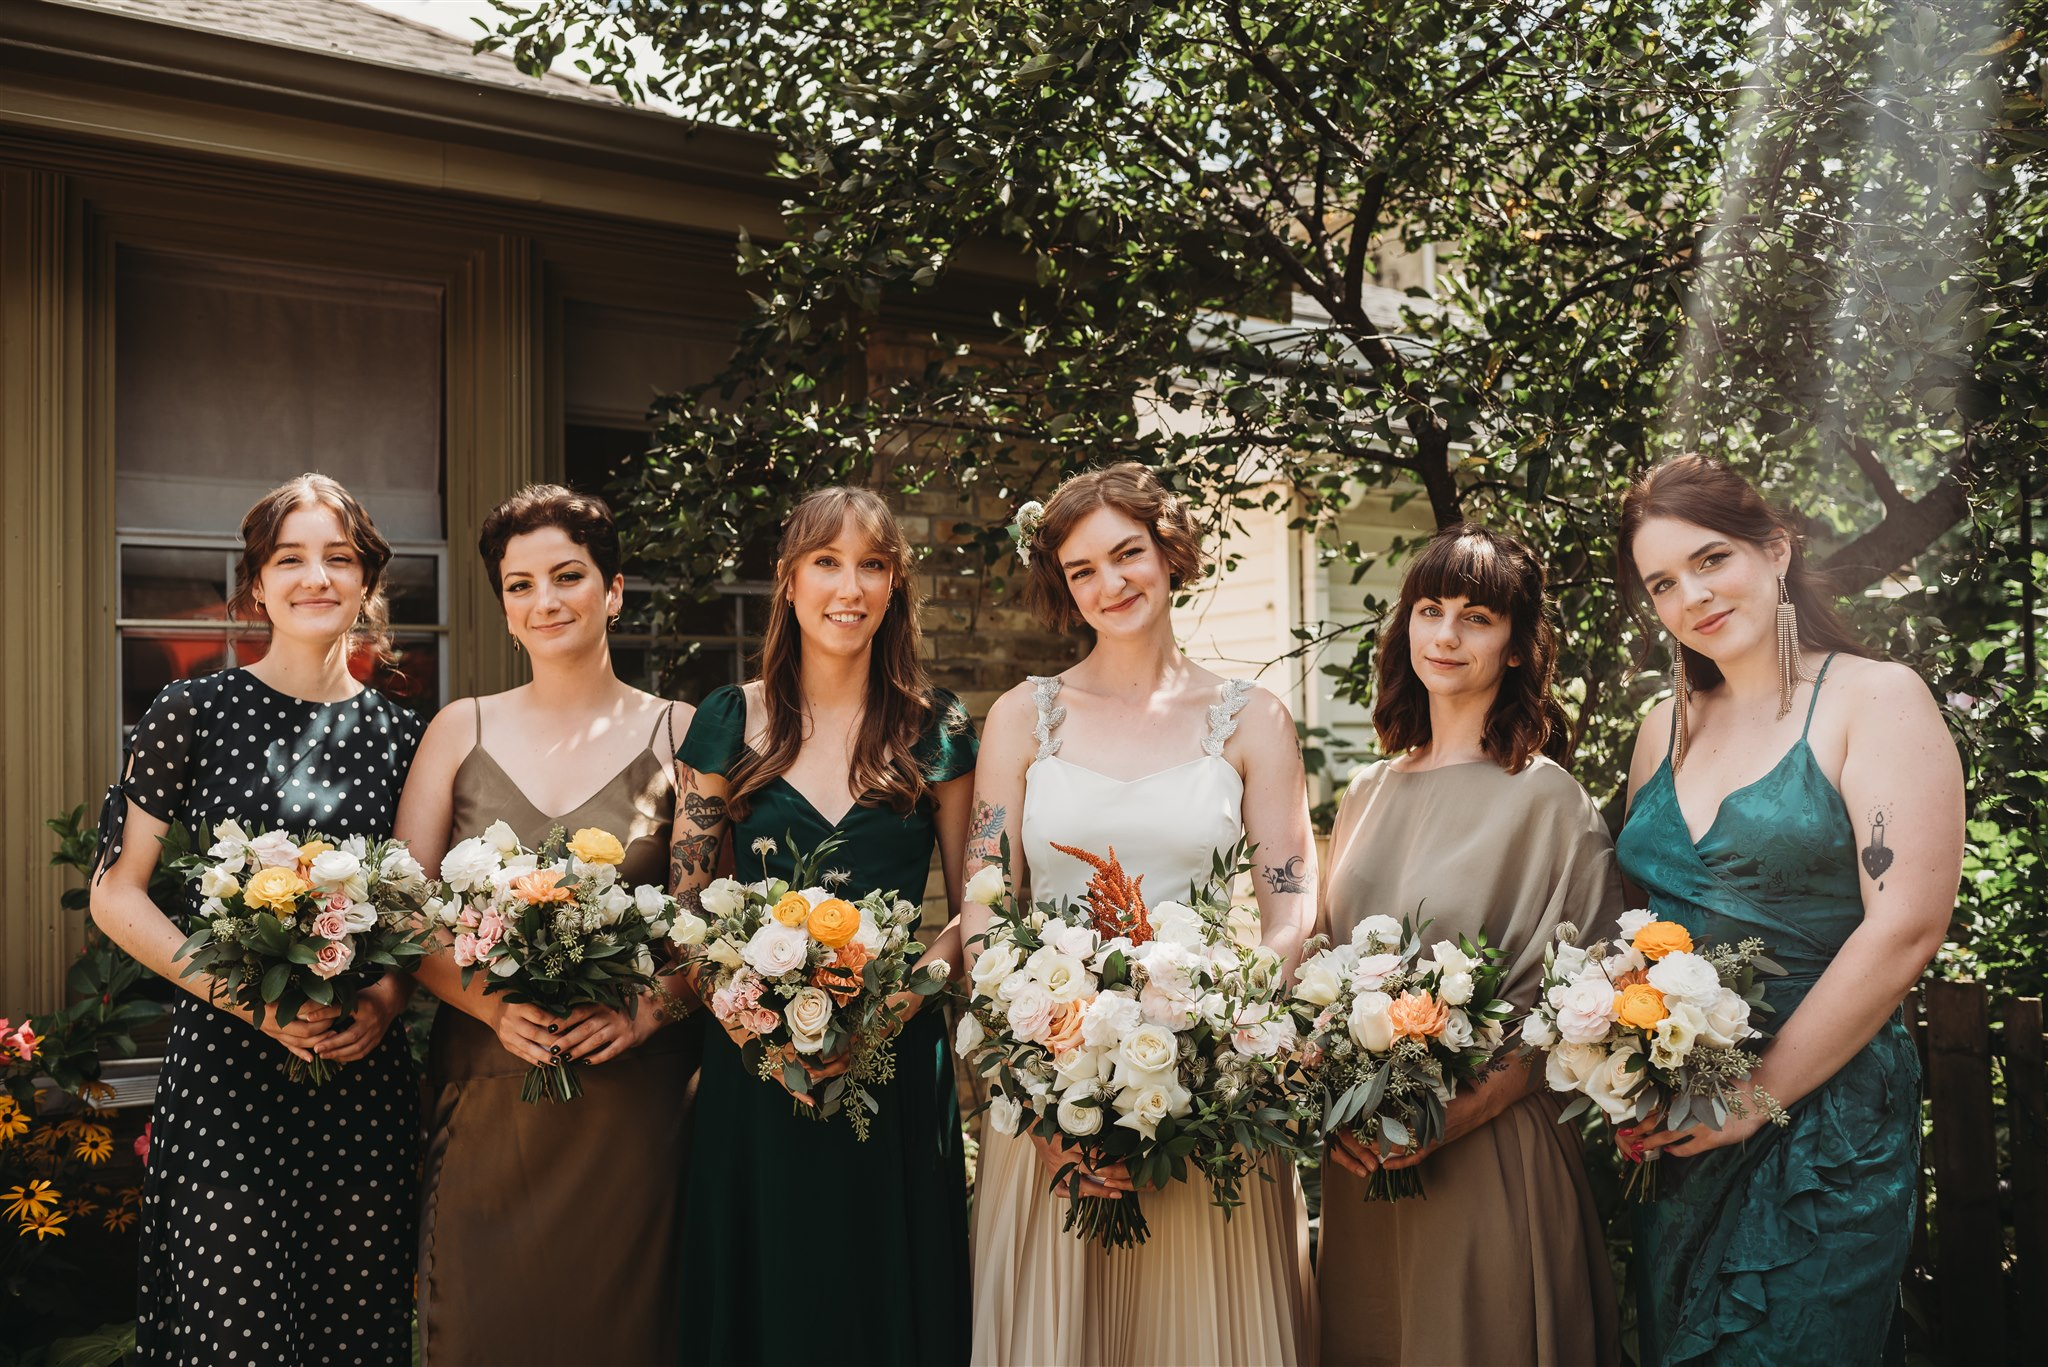 wedding party picture in backyard garden with mismatched dresses